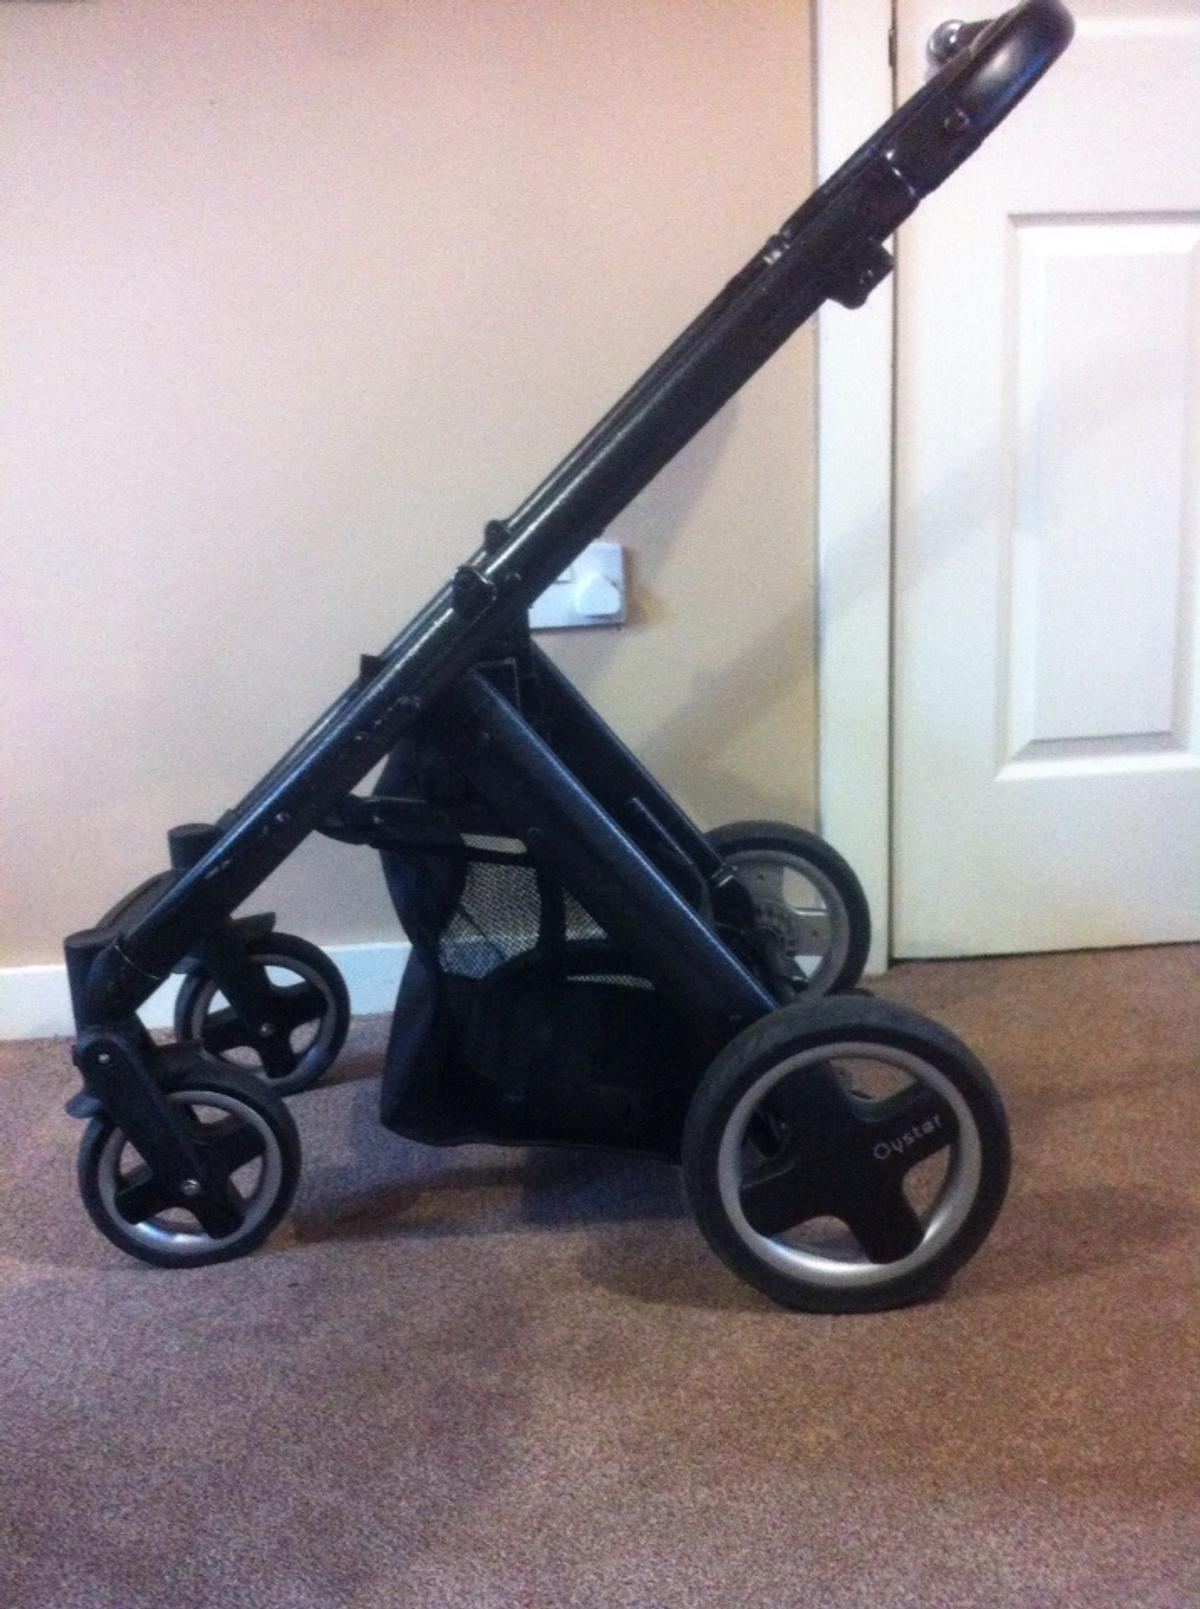 Egg Pram Replacement Wheels Oyster Pram Chassis Spares Only